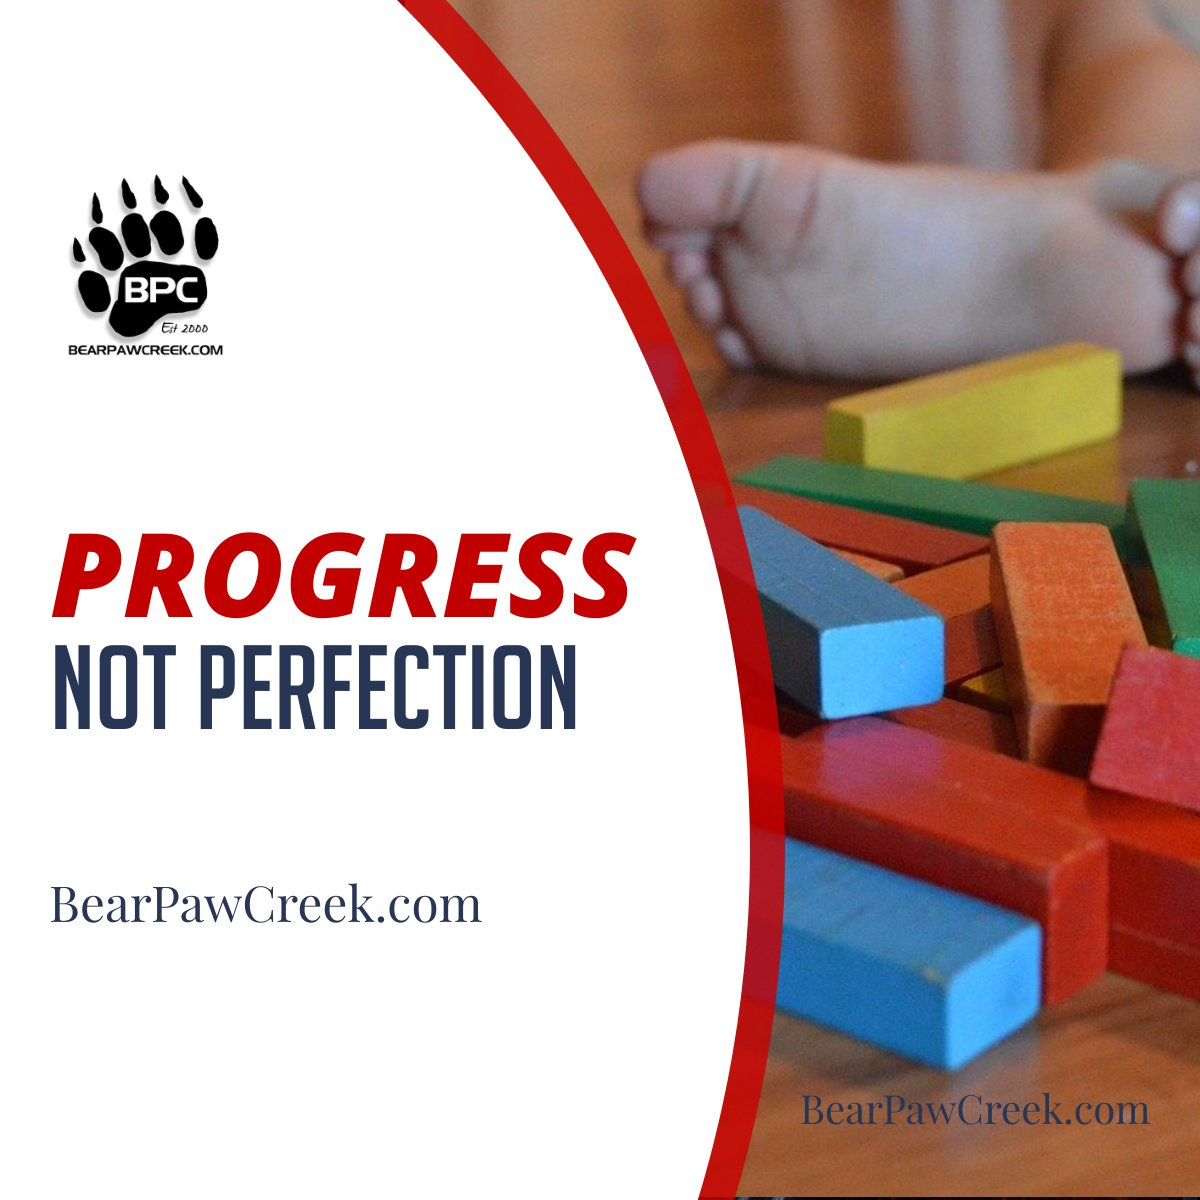 It's so easy to focus on where we want to be instead of what we've conquered! <3 #bearpawcreek #progressnotperfection #musictherapy #musicandmovement #nothingdownaboutit #momtruth #nothingisordinary #therapy #therapist #specialneedsmom #specialneedskids #movementpropspic.twitter.com/O9180bznNs